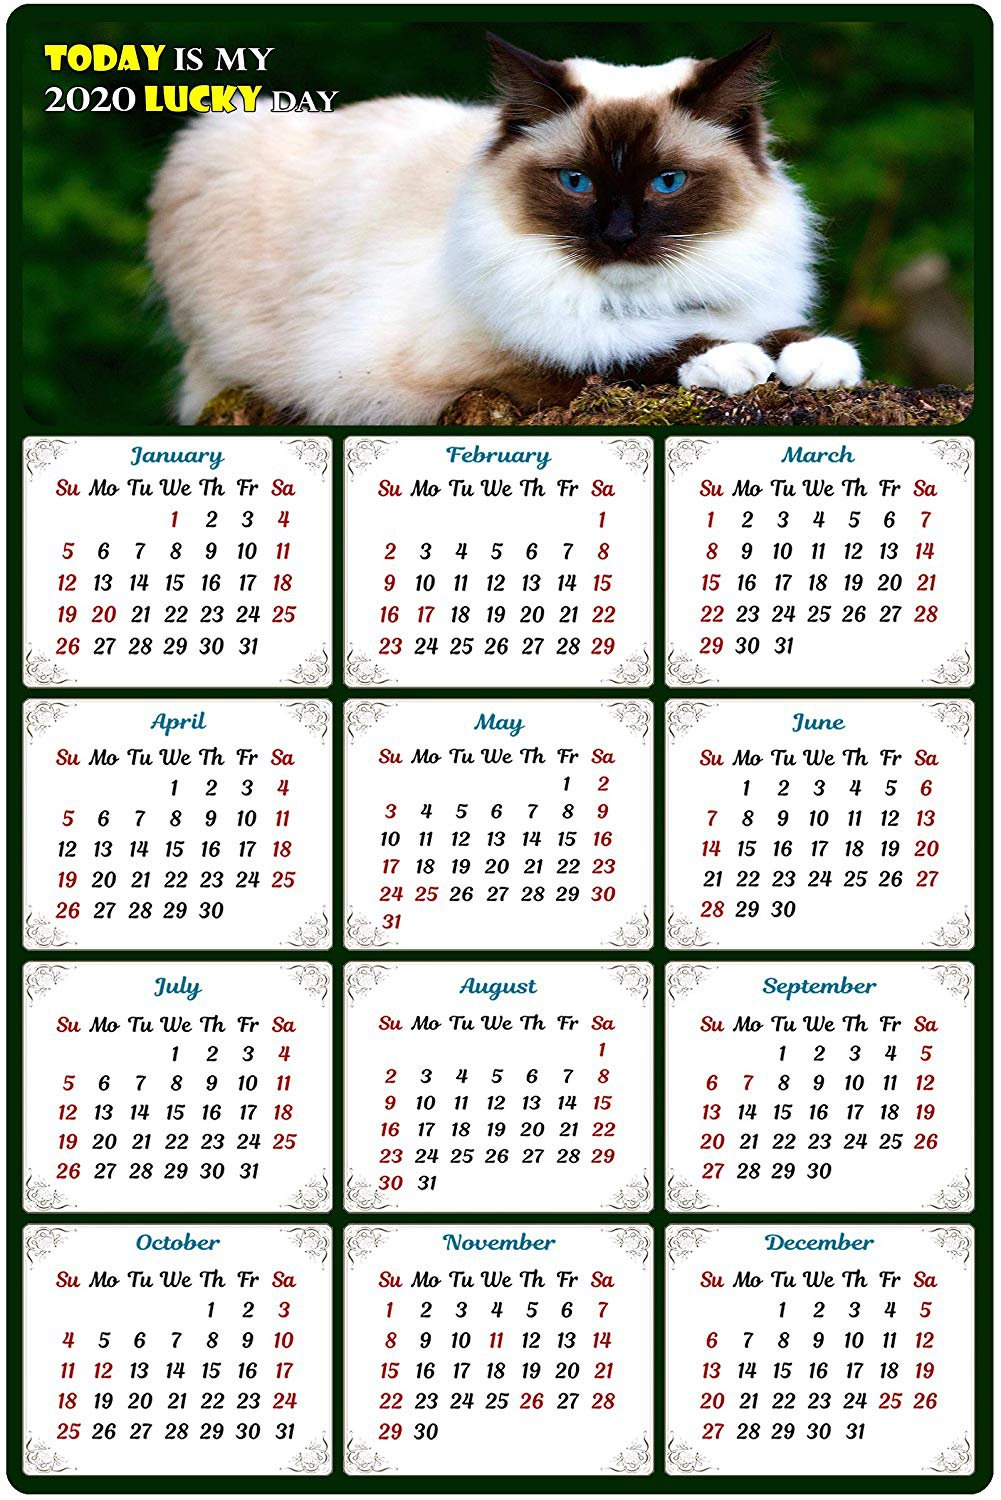 2020 Magnetic Calendar - Calendar Magnets - Today is My Lucky Day - Cat Themed 2